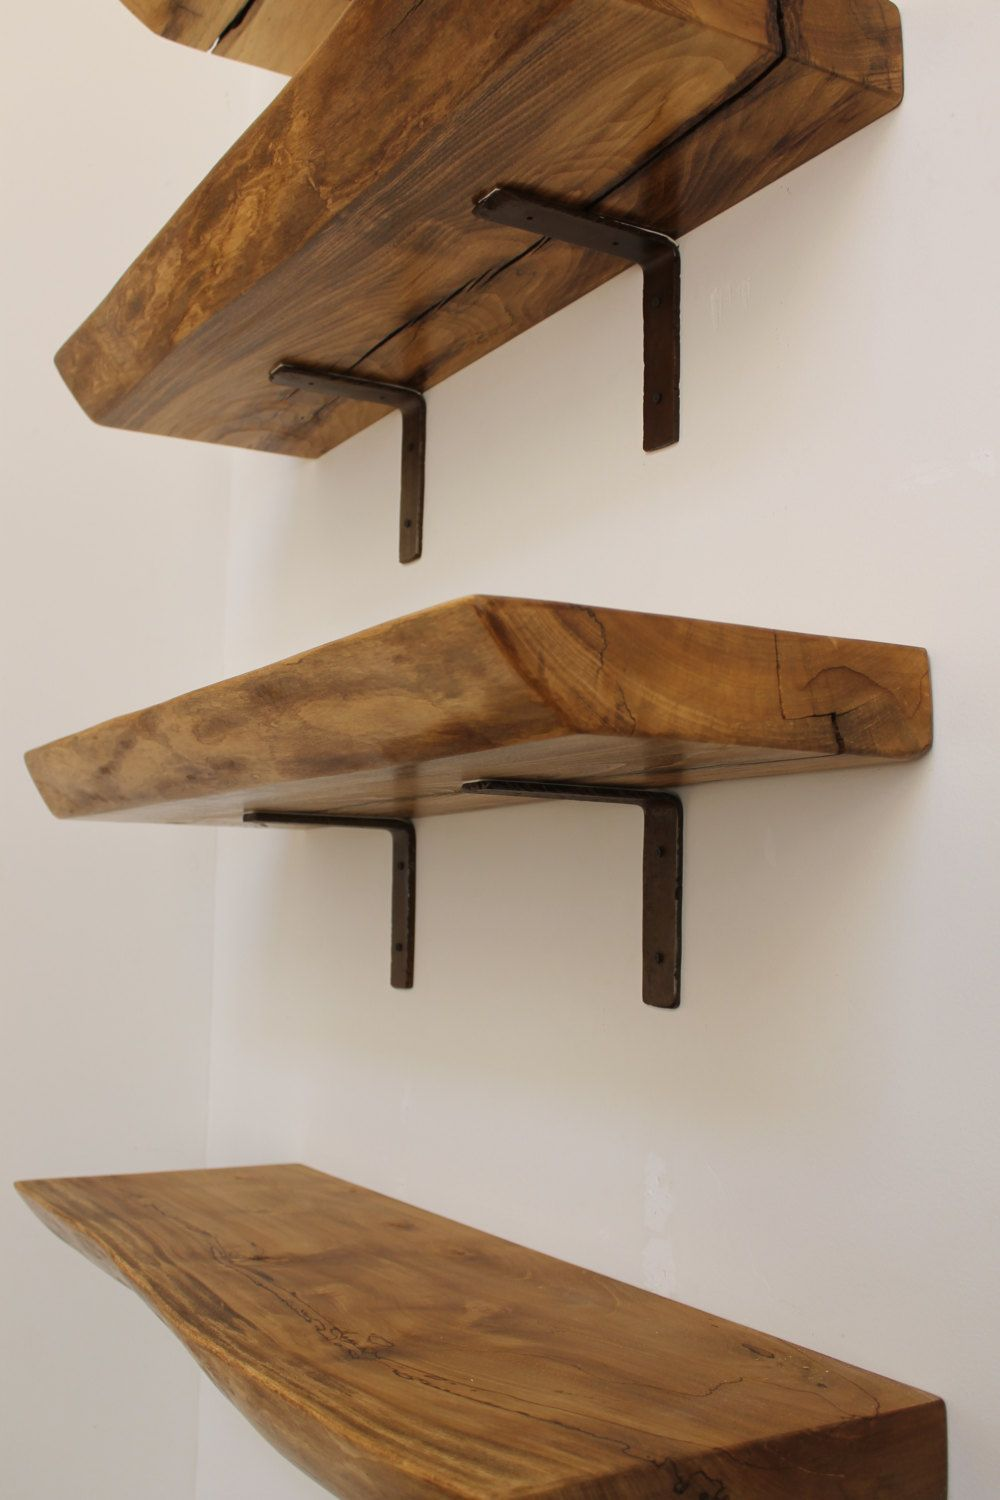 Floating shelf live edge slab wood open shelving wood Open shelving